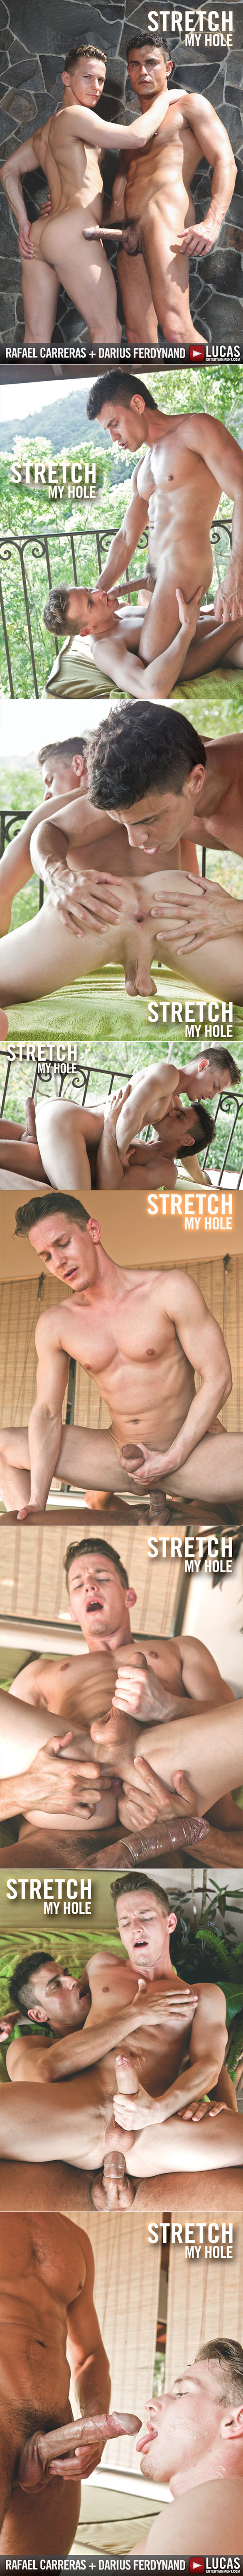 "LucasRaunch: Rafael Carreras opens up Darius Ferdynand's ass in ""Stretch My Hole"""